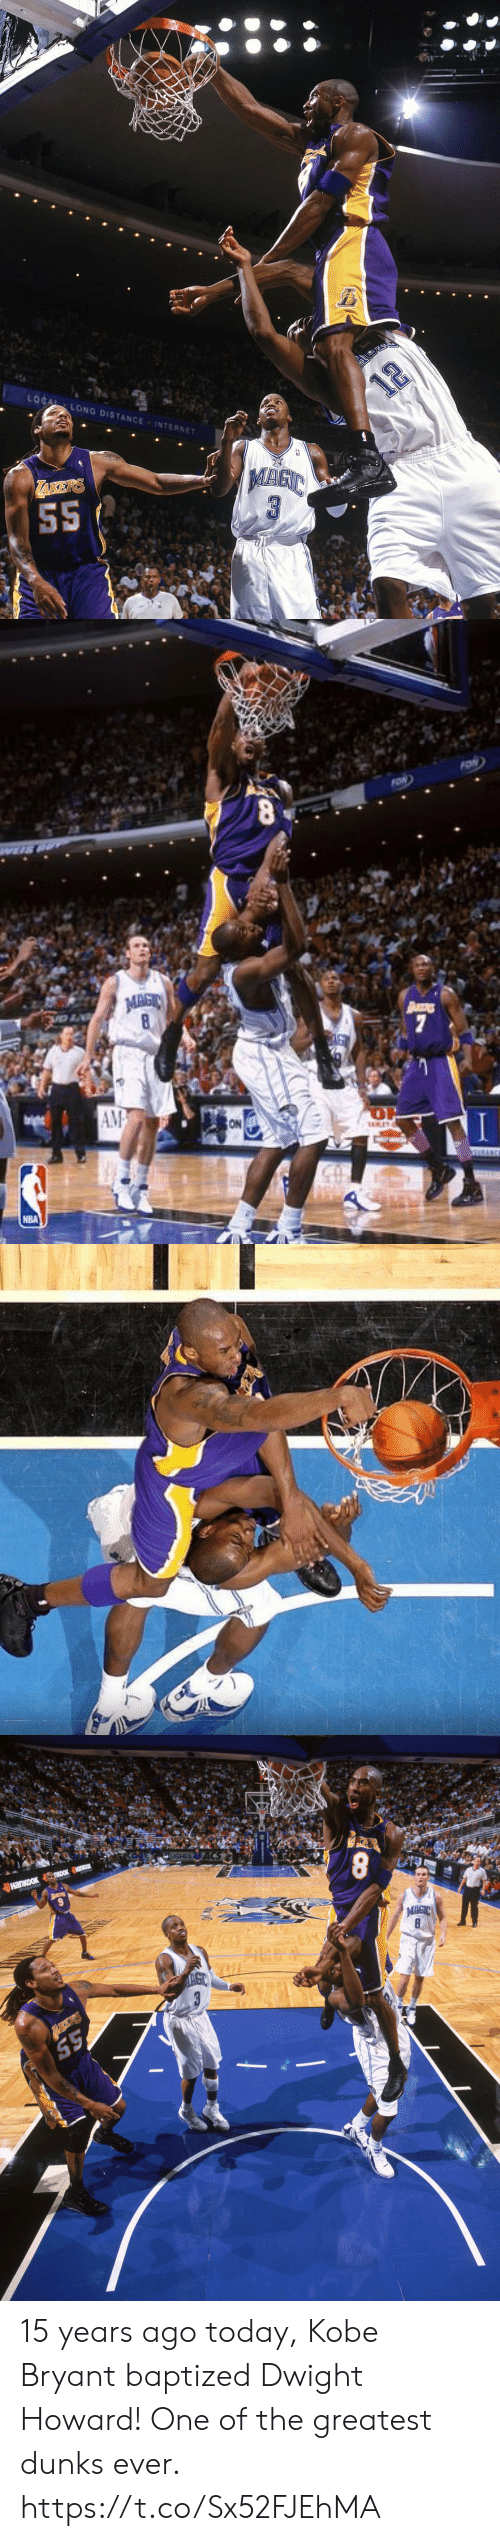 Dwight Howard, Internet, and Kobe Bryant: LOCAL LONG DISTANCE INTERNET  12  TAKERS  S5   FON  MAGIC  art  8  7  AM  ON  URANCE  NBA   UGHES ACS  8  TIKDOK HaK  напкоок  MAGIC  8 15 years ago today, Kobe Bryant baptized Dwight Howard!  One of the greatest dunks ever. https://t.co/Sx52FJEhMA